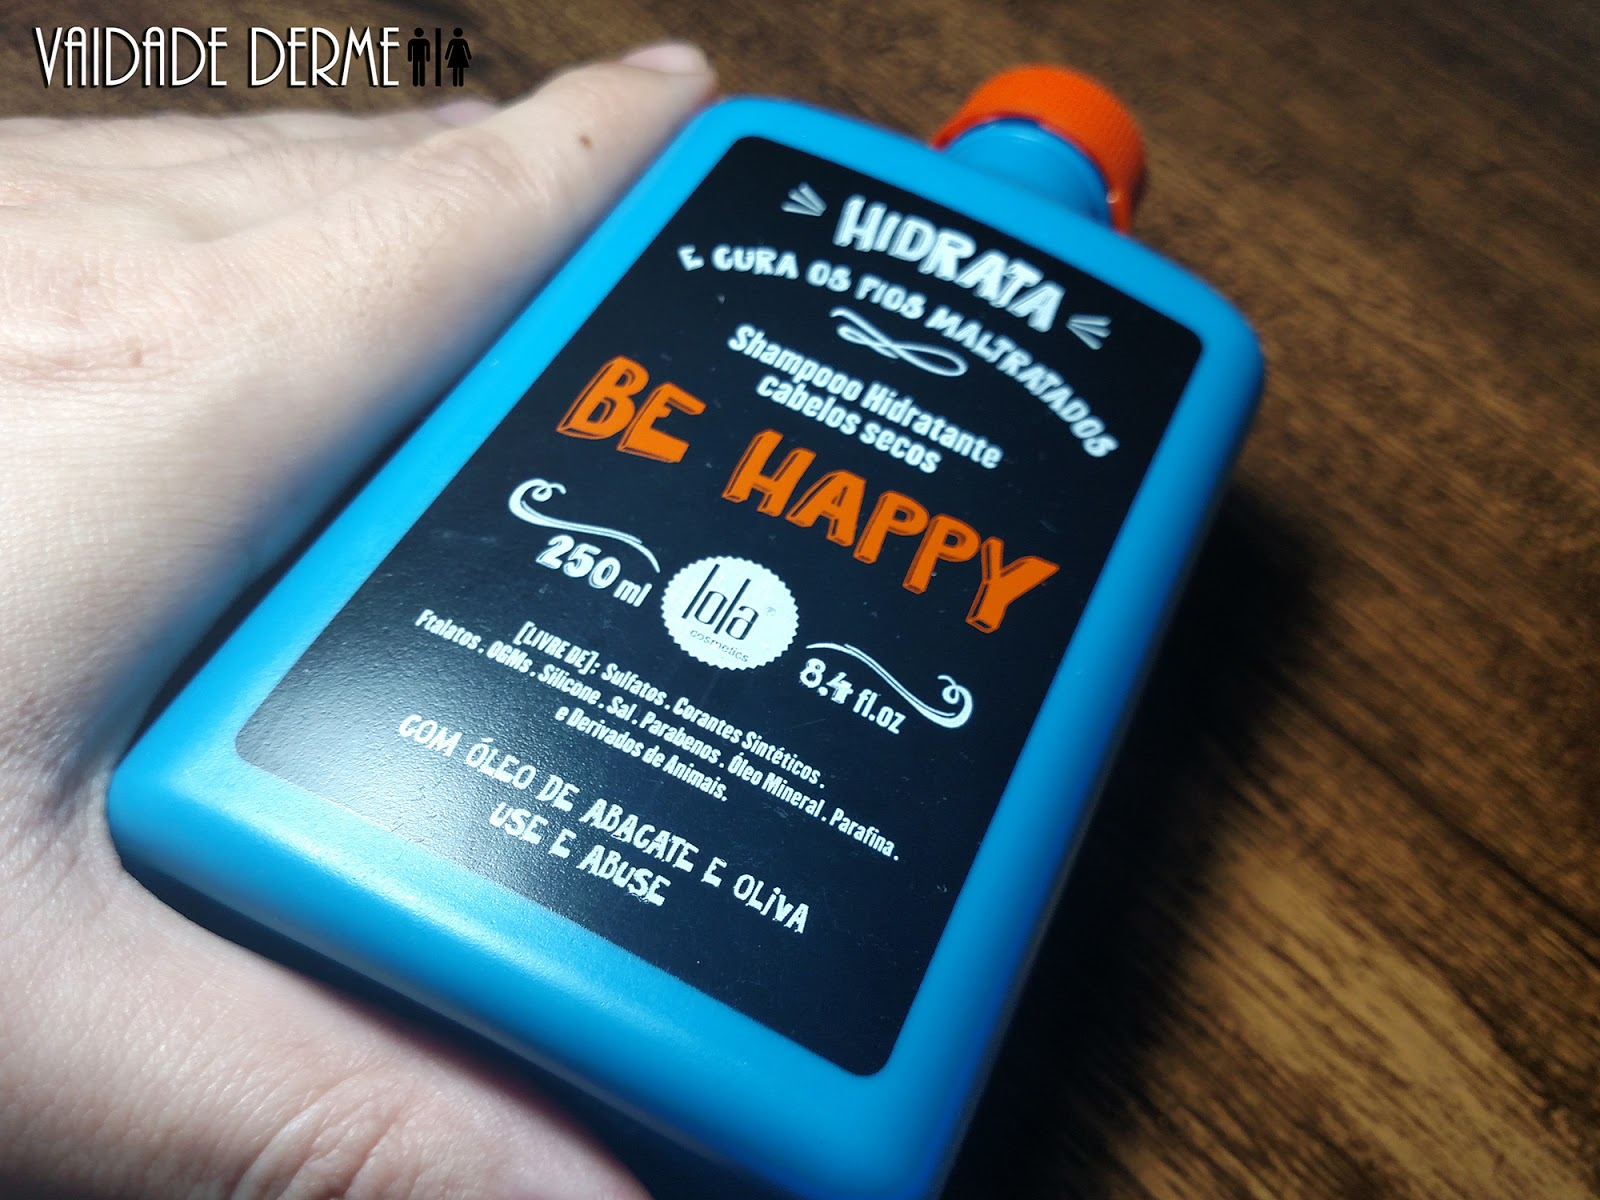 Shampoo Hidratante Be Happy Lola Cosmetics